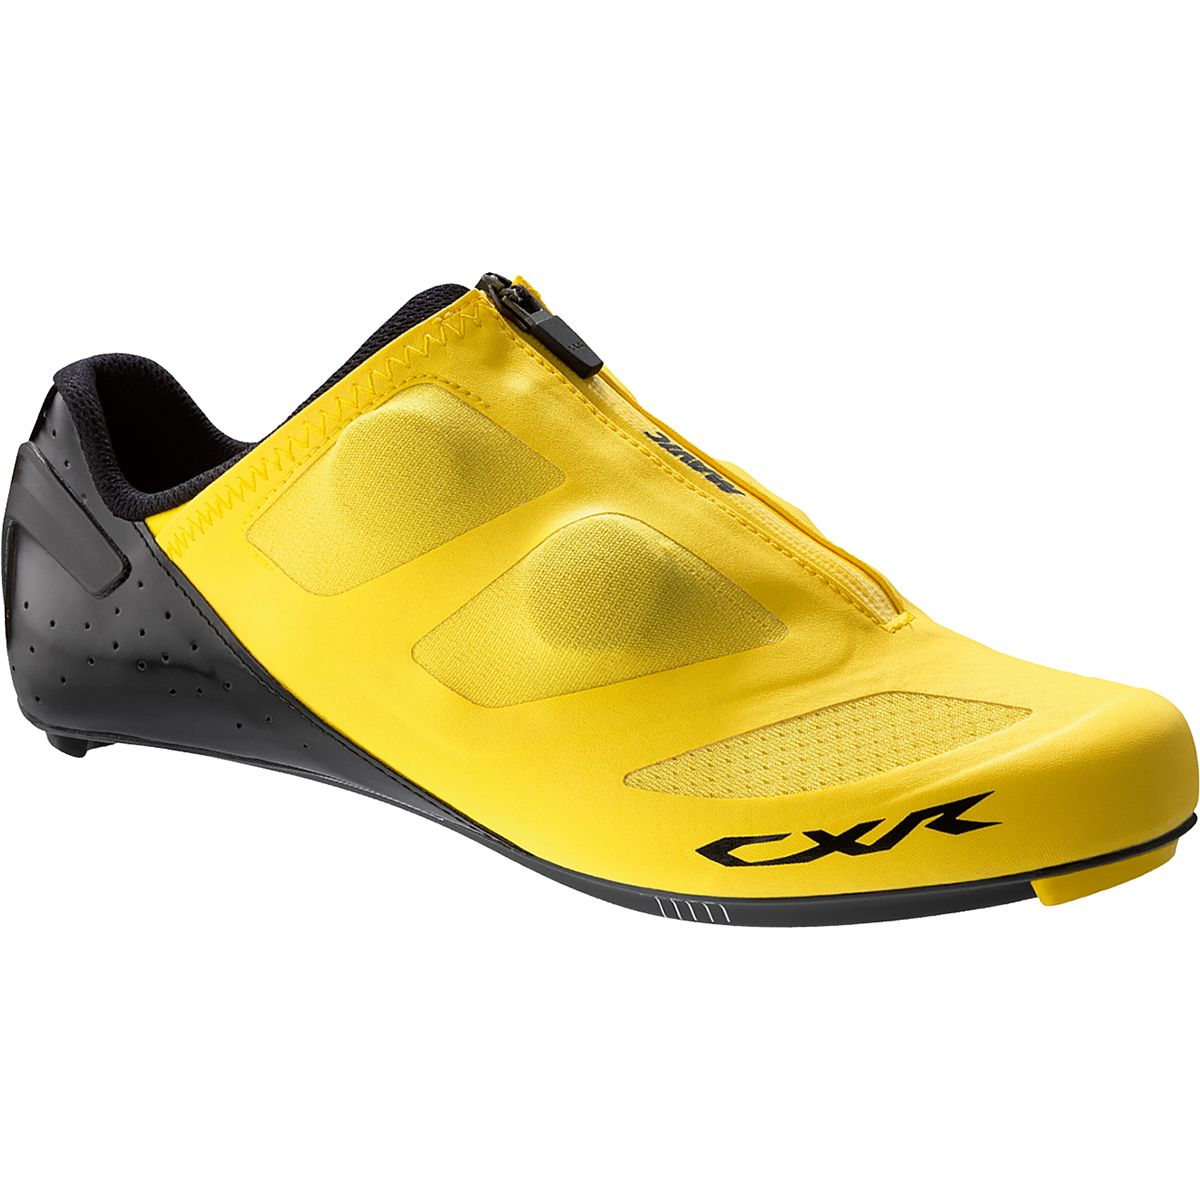 Mens Cycling Shoes Size